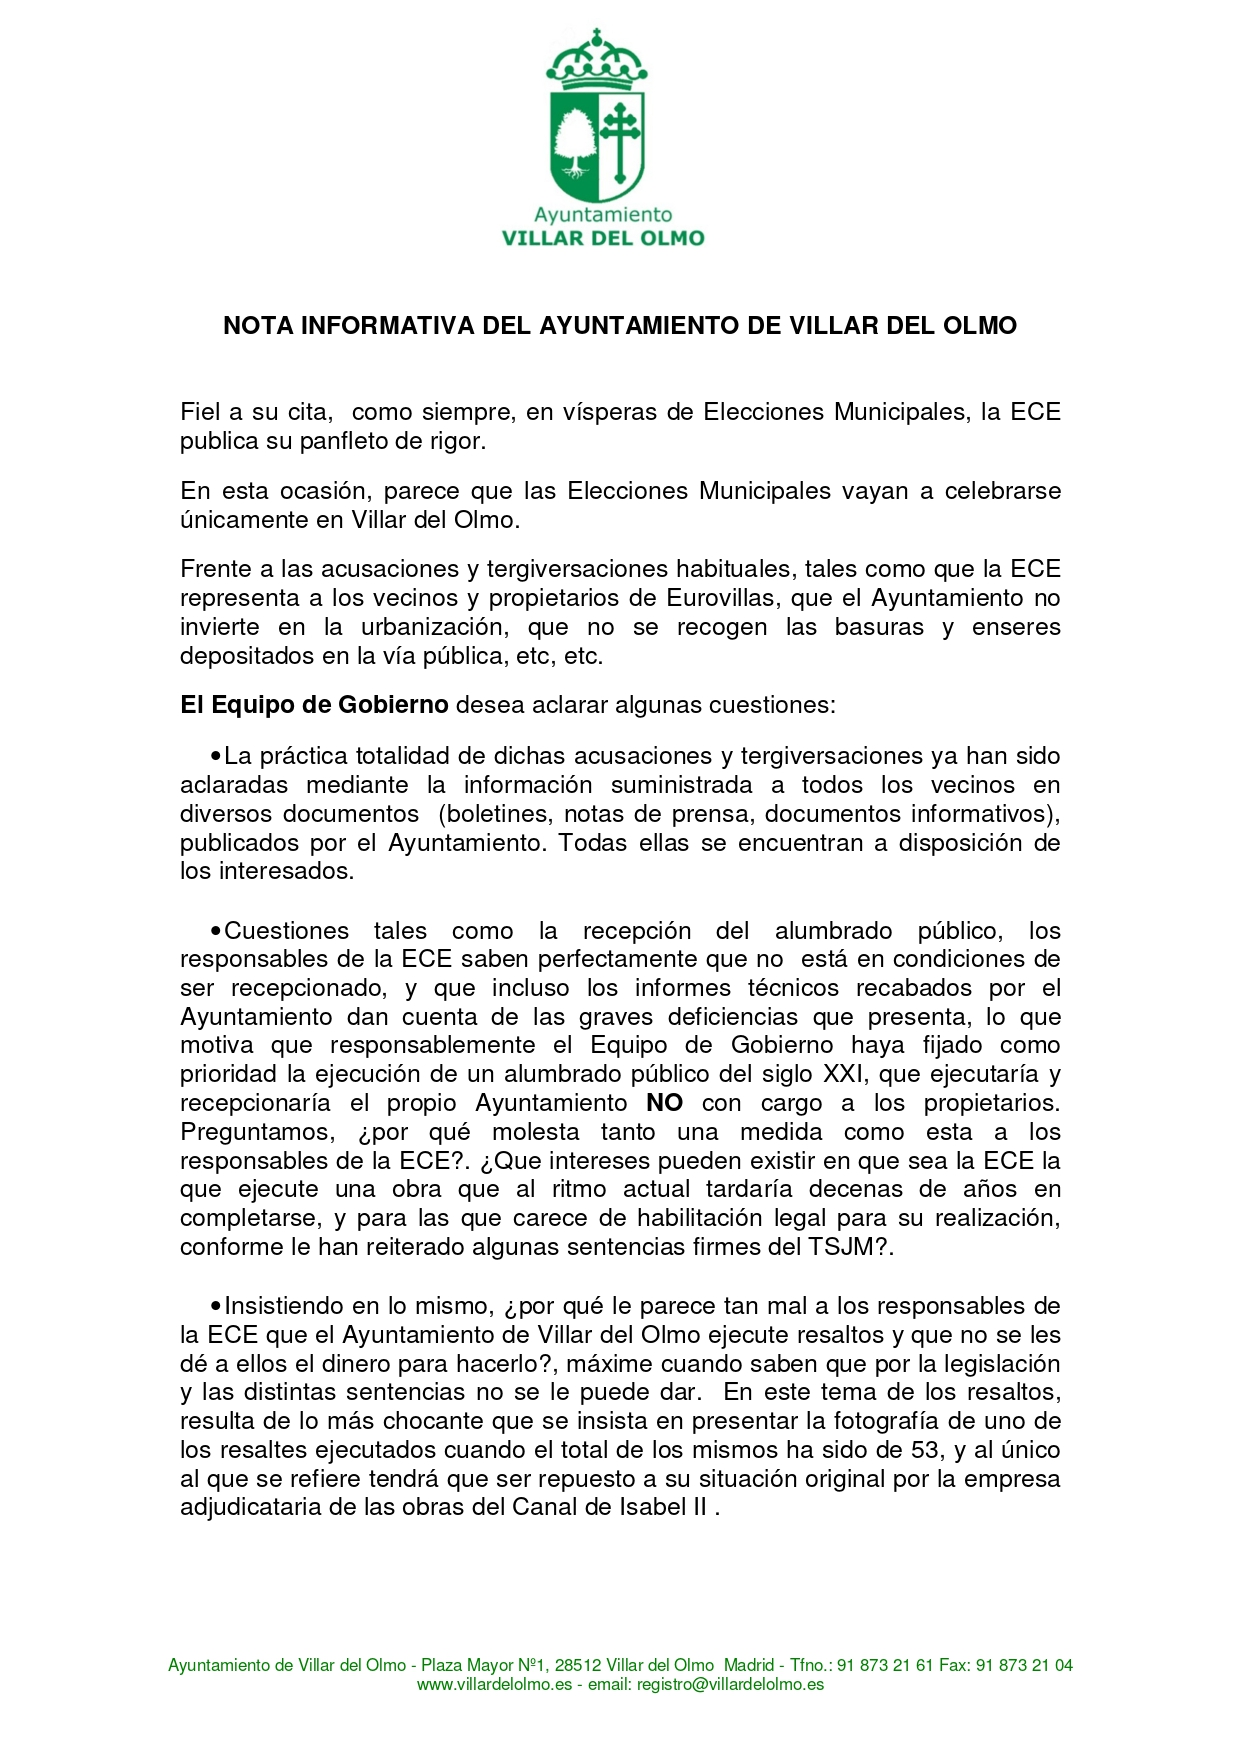 NOTAINFORMATIVAAYUNTAMIENTO20190519-pages-to-jpg-0001